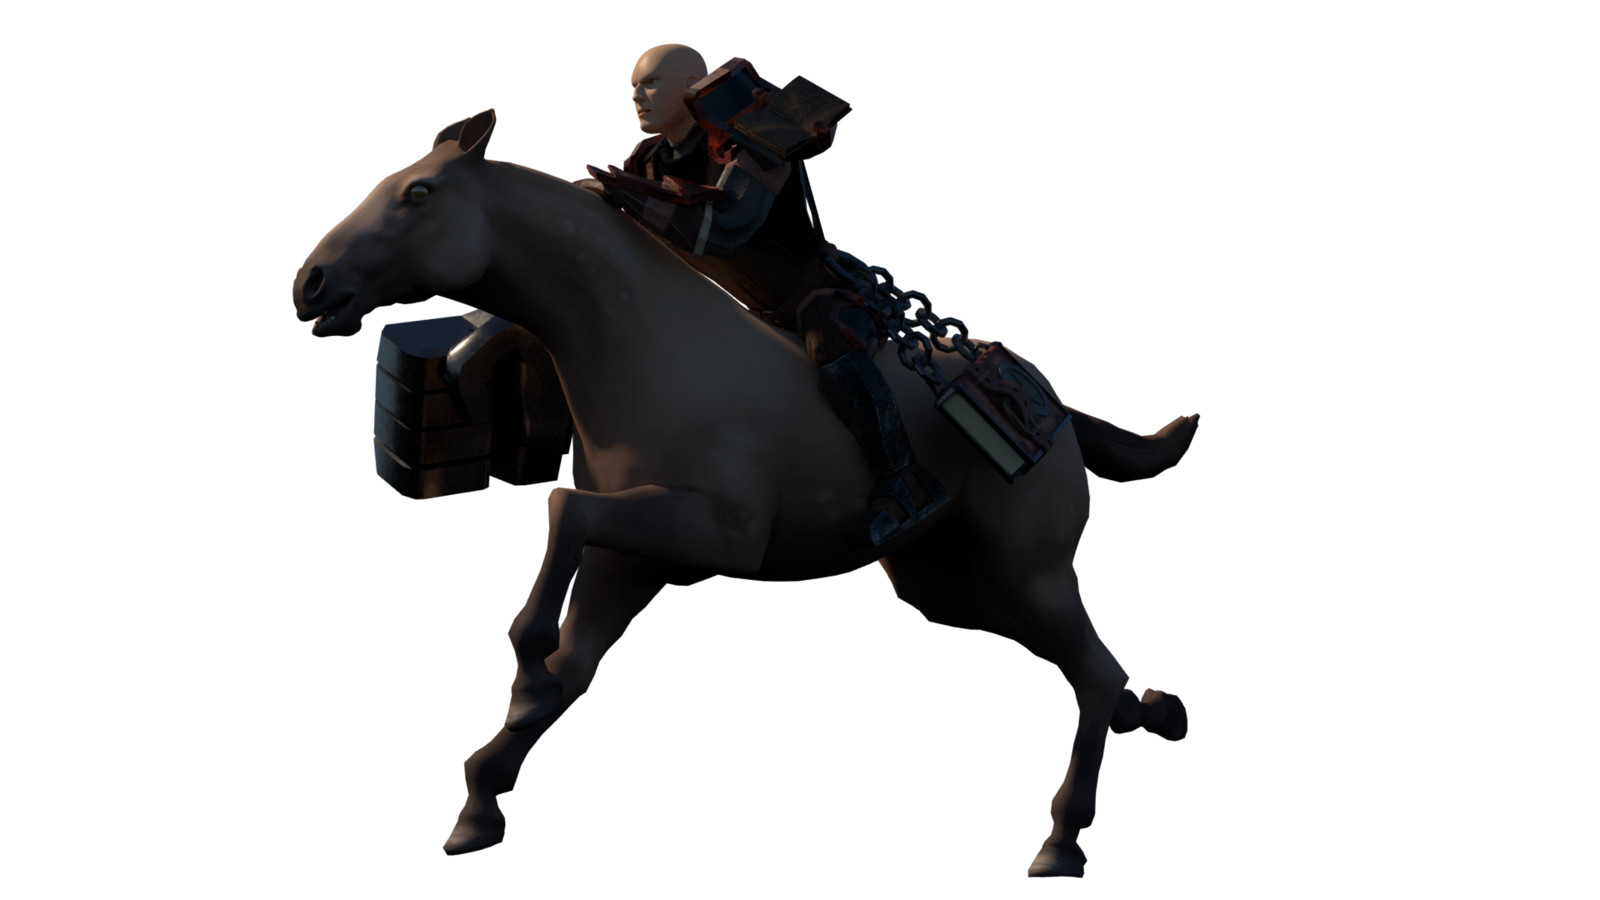 Cleric riding his horse